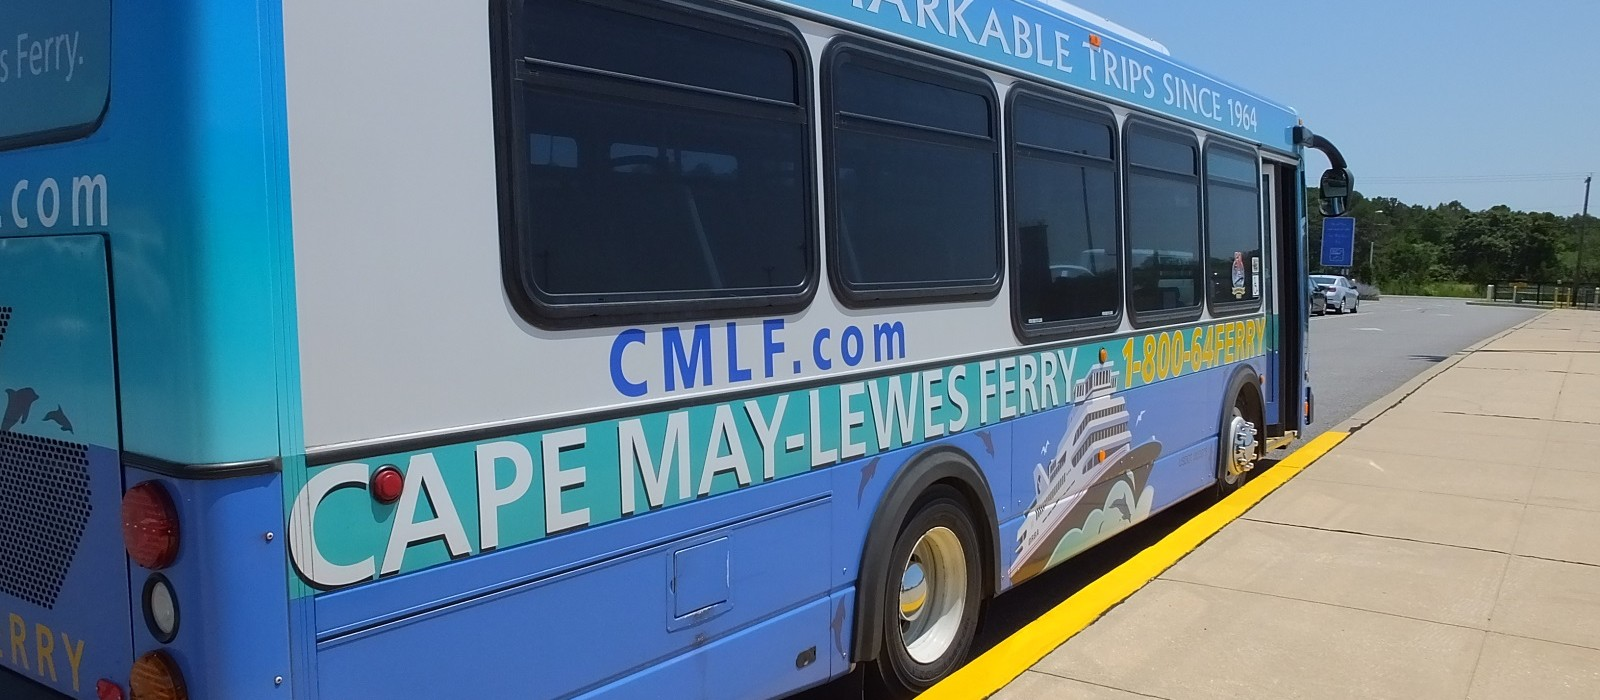 Shuttle Information & Directions | Cape May-Lewes Ferry